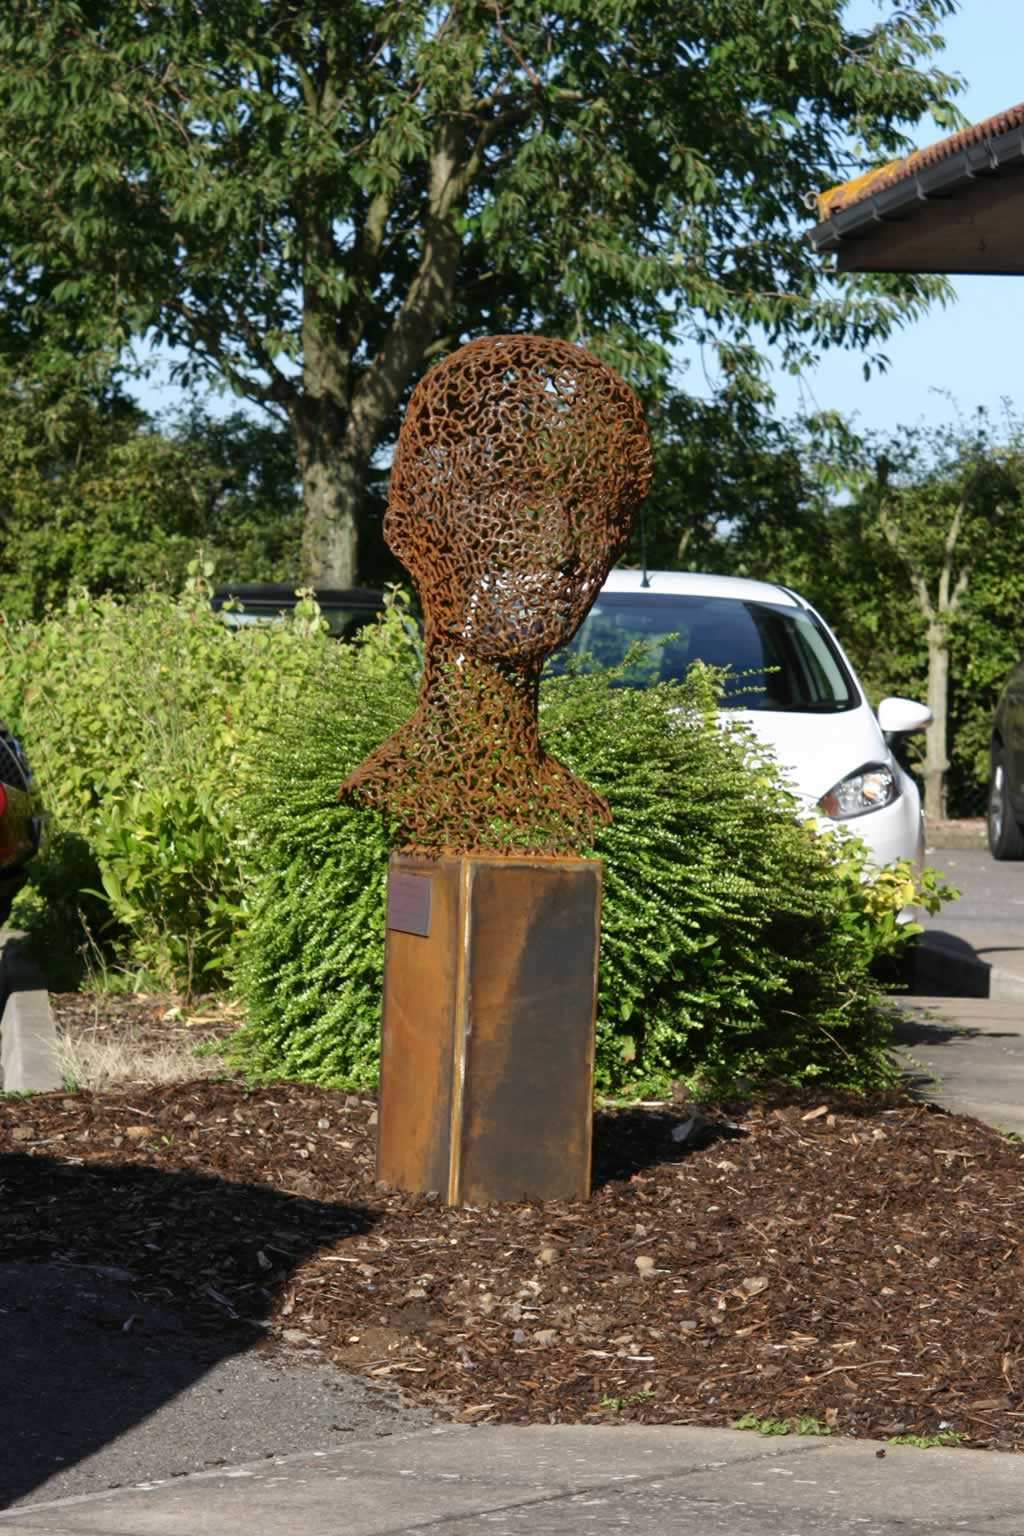 W-M-C at Friston House (abstract figurative sculpture) by sculptor Ian Campbell-Briggs